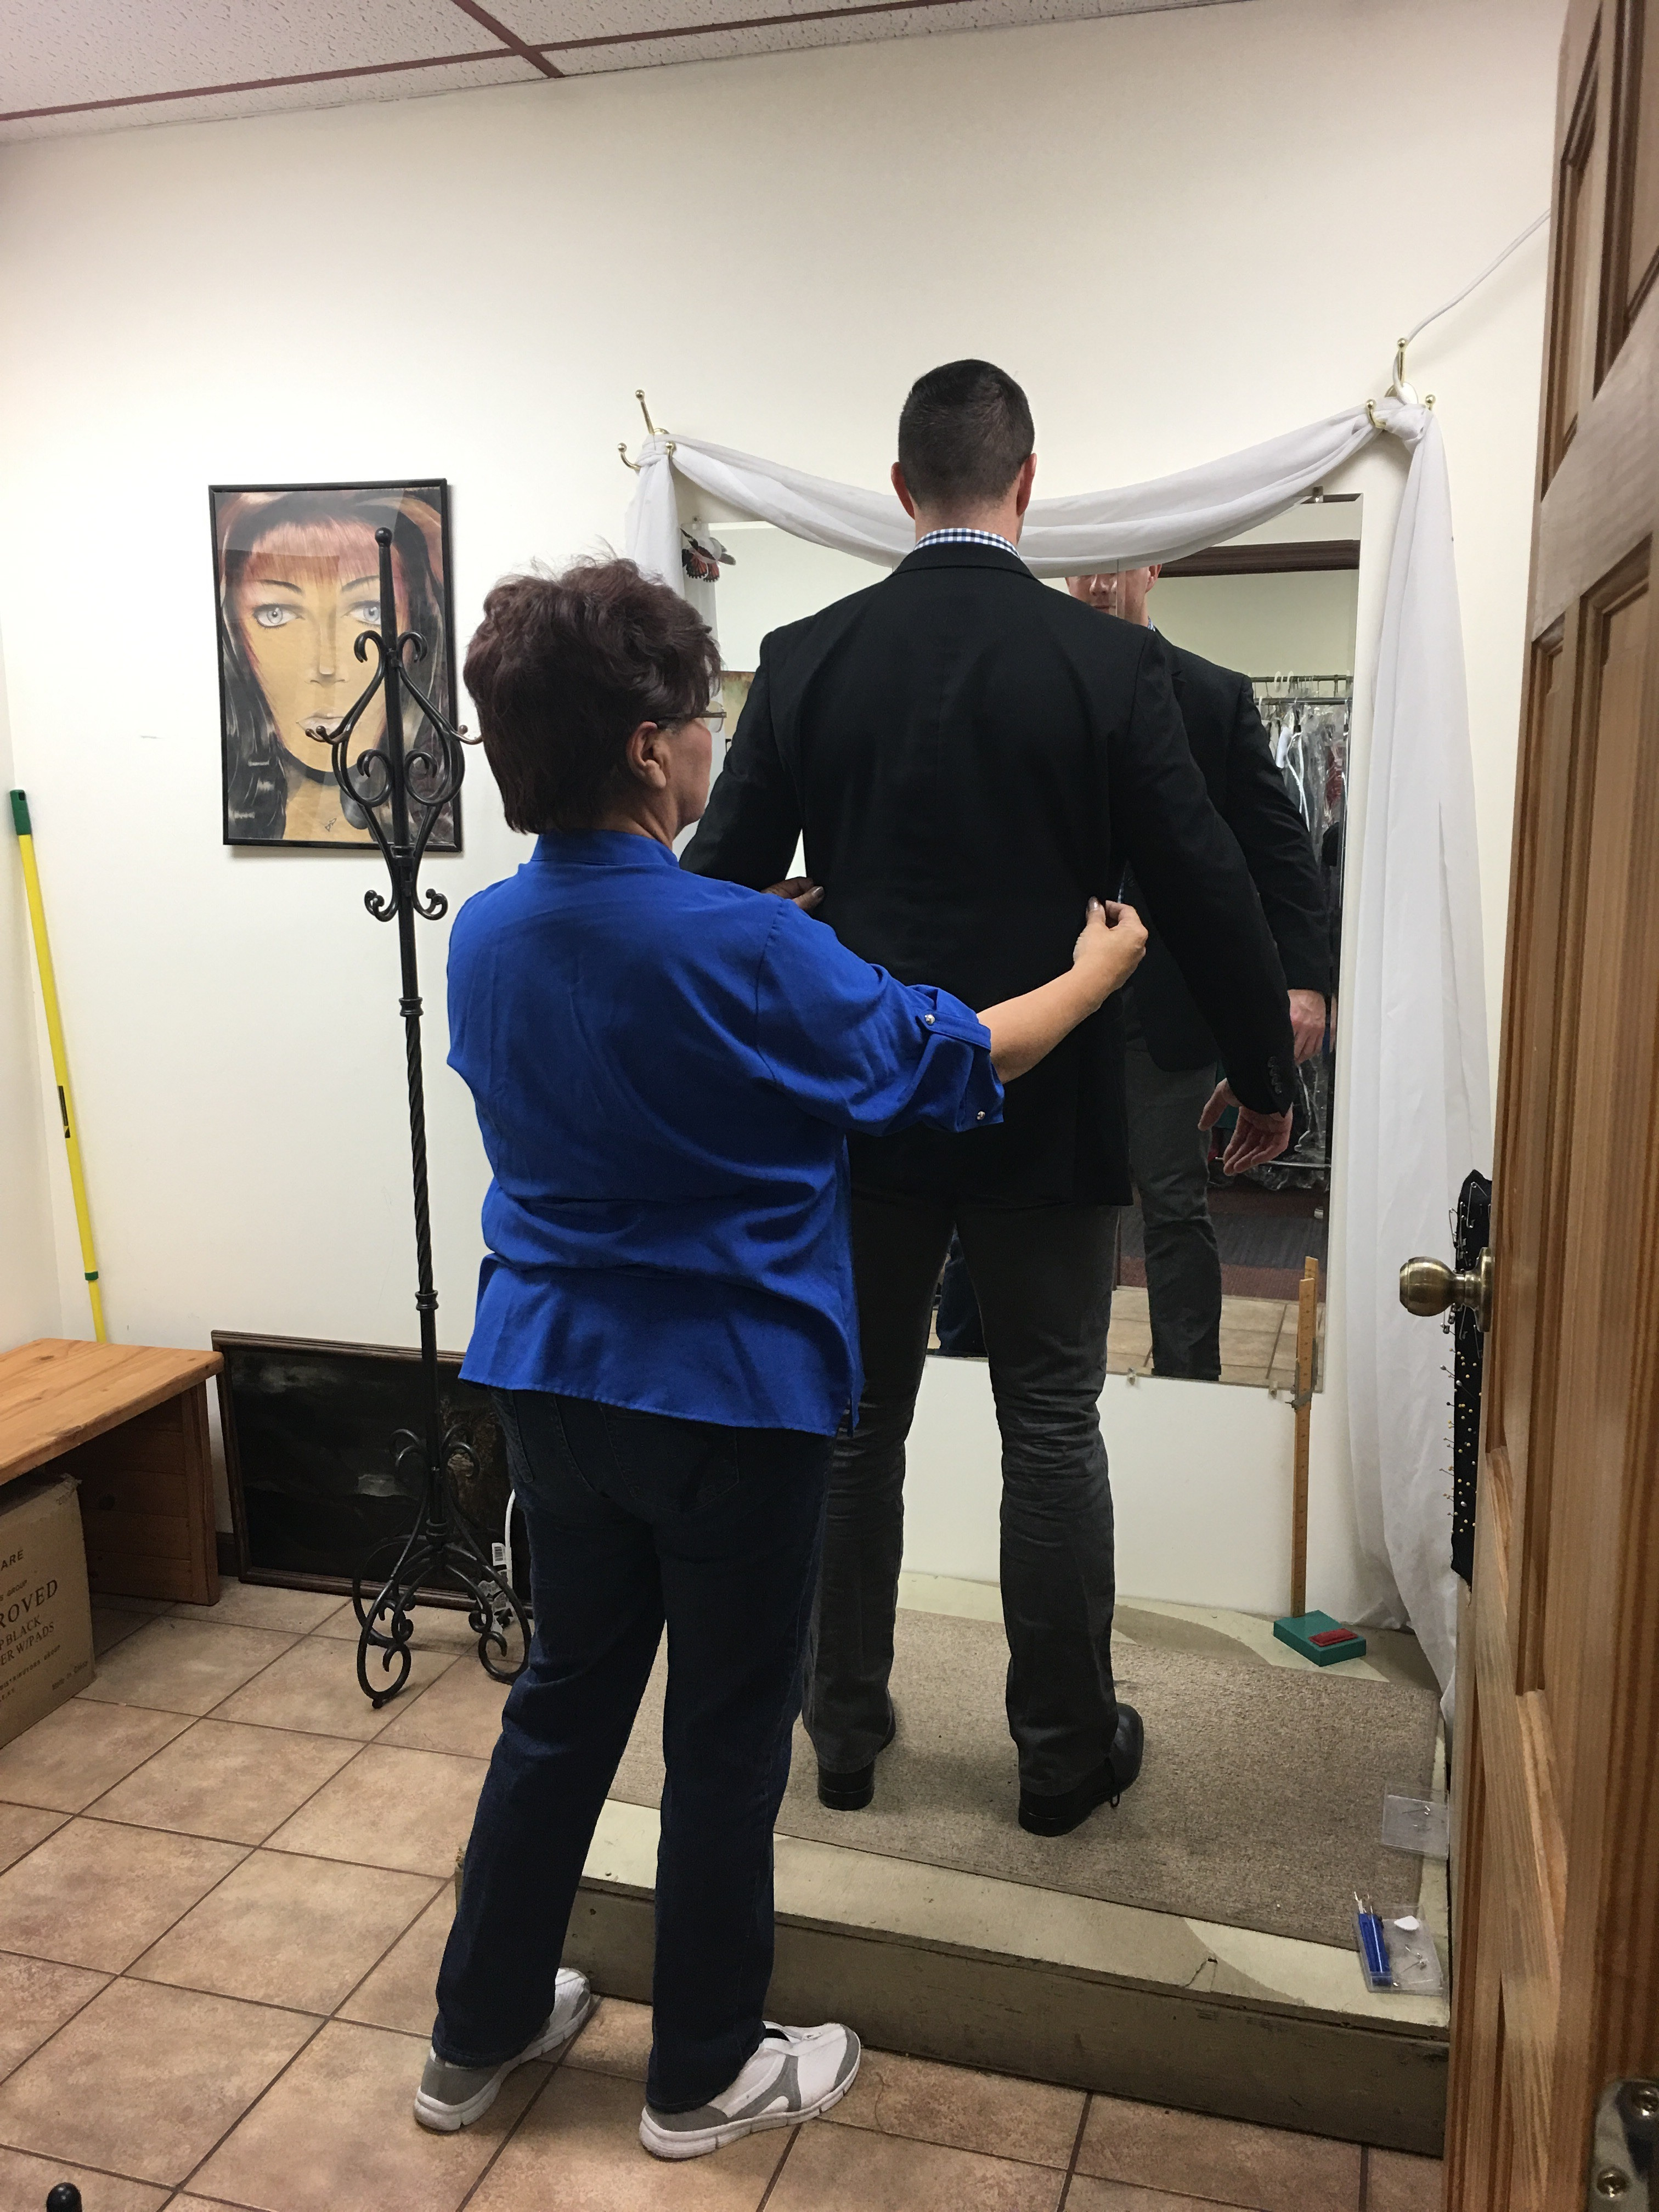 Hills alterations repairs in columbus oh 43204 for Wedding dress alterations columbus ohio